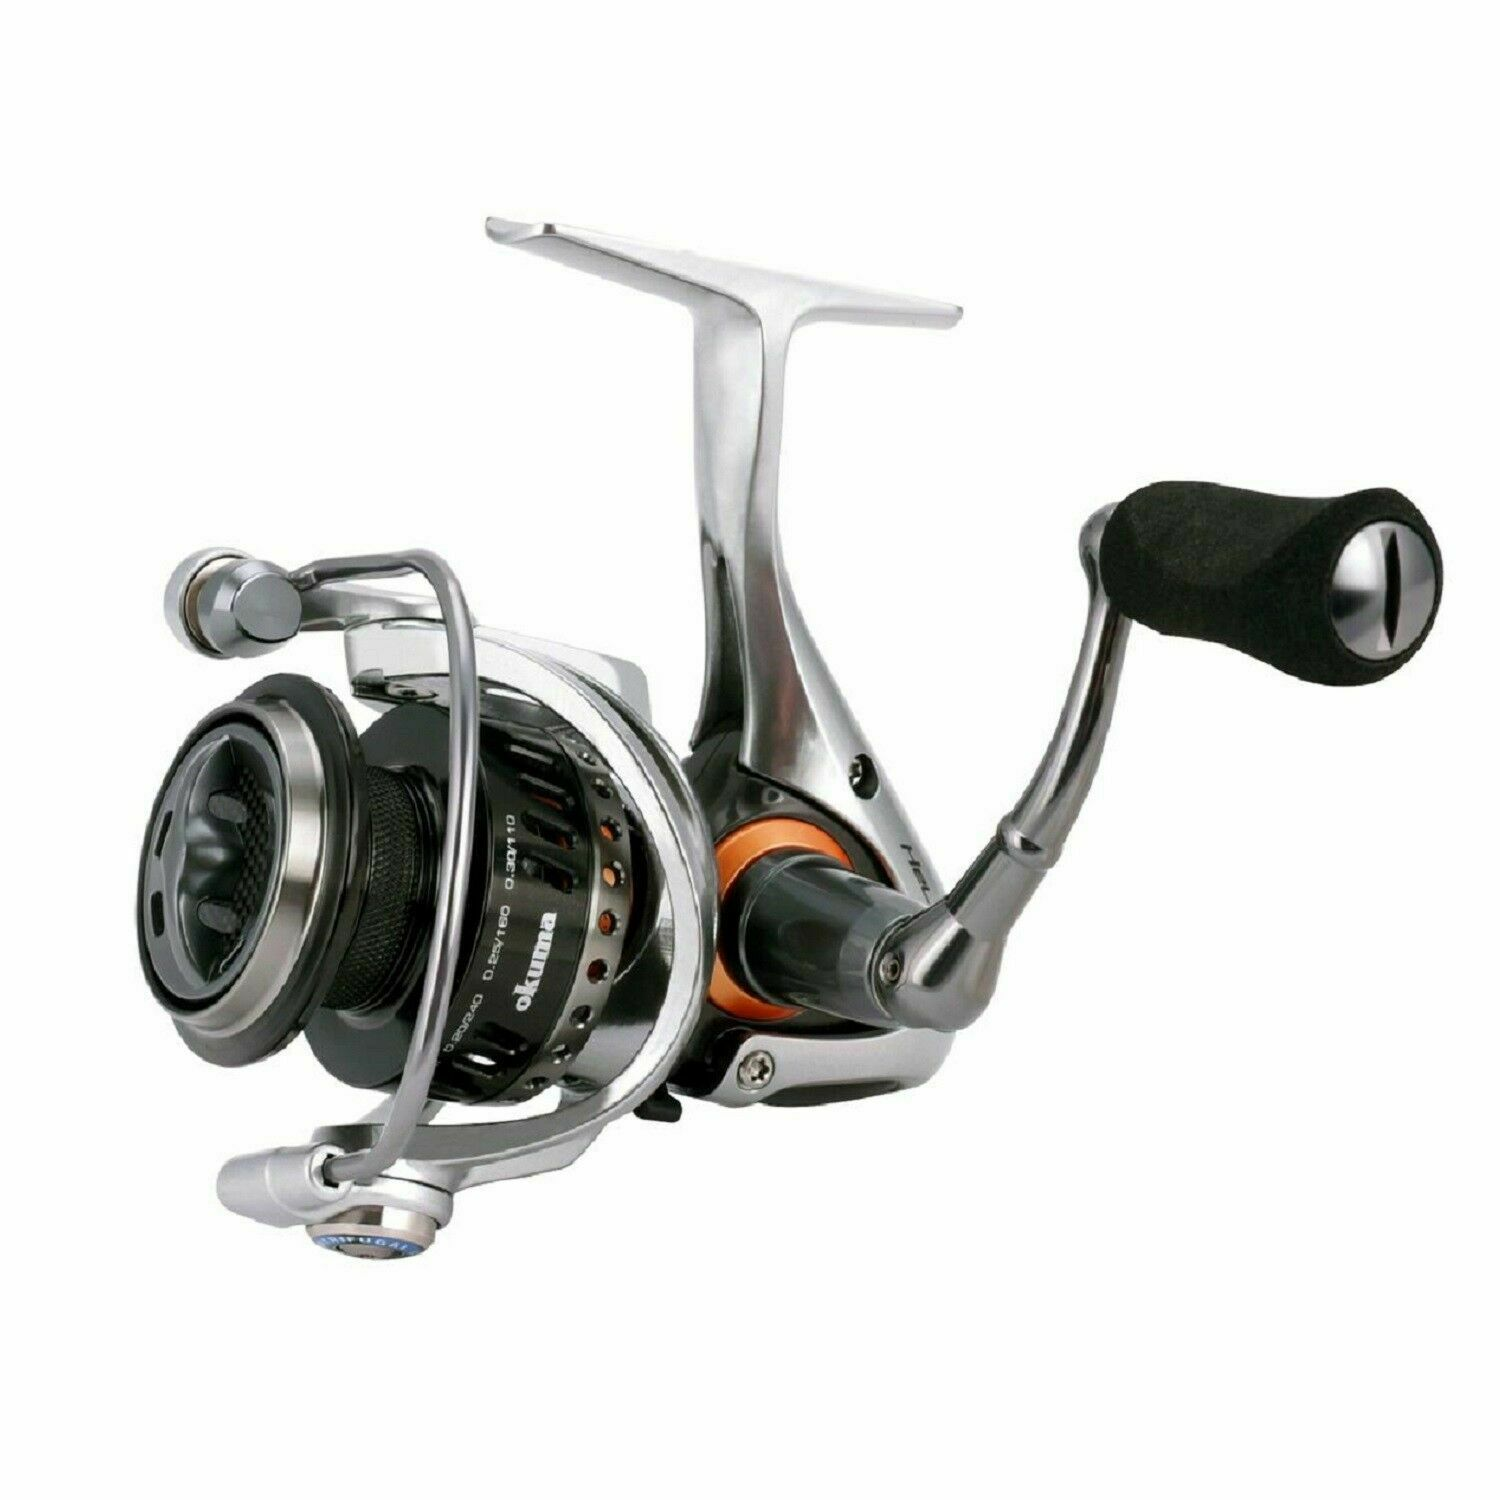 Okuma HSX-40S Helios Sx High Speed Spin Reel 5.0 1 Ratio 8hpb+1rb (hsx40s)